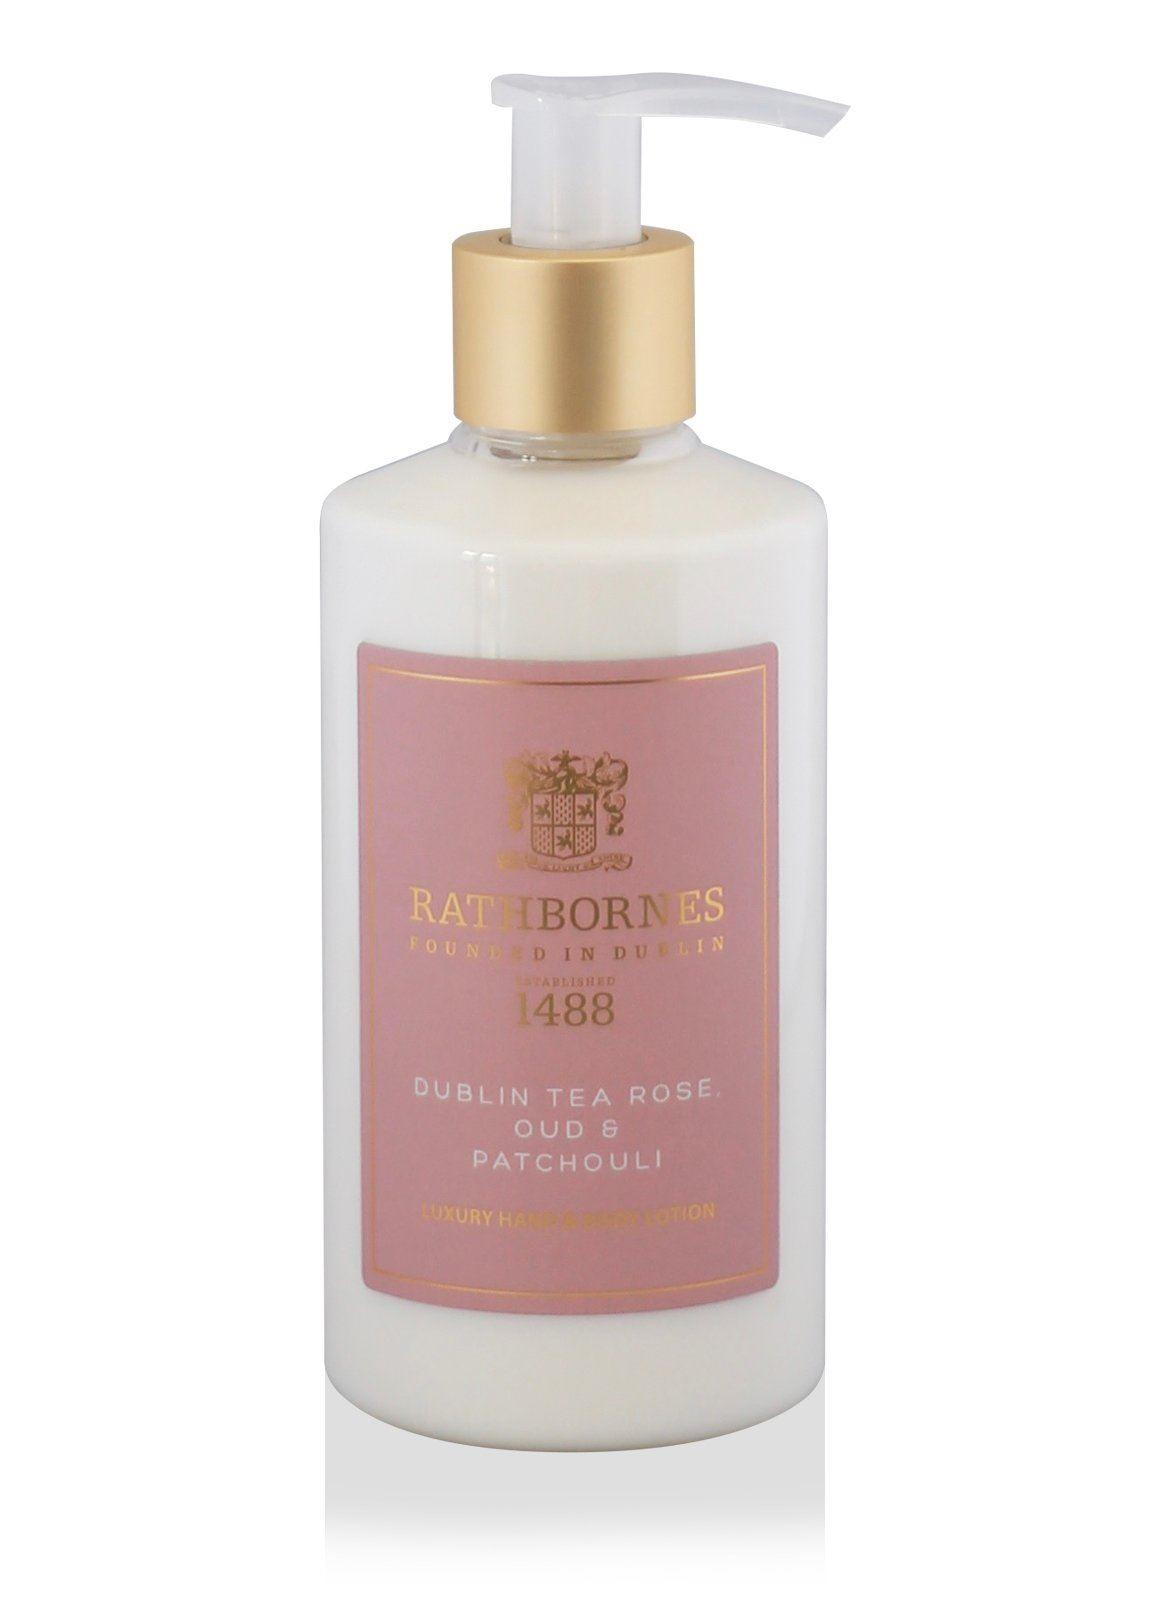 Rathbornes 1488 Dublin Tea Rose, Oud and Patchouli Hand & Body Lotion